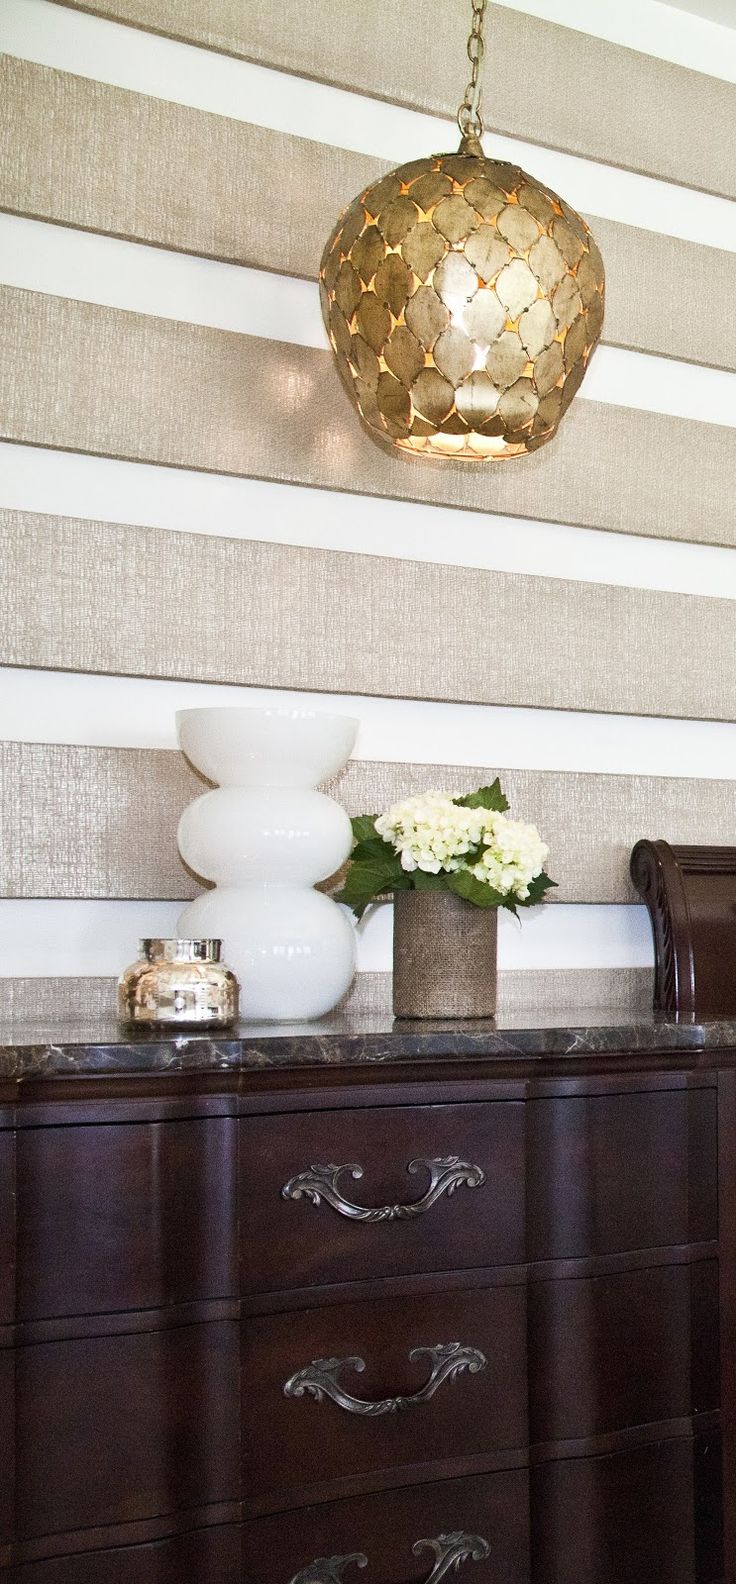 wall treatment...1x6 boards wrapped in metallic grasscloth - what a great idea for a custom wall treatment for an accent wall. via Beach Chic Design.